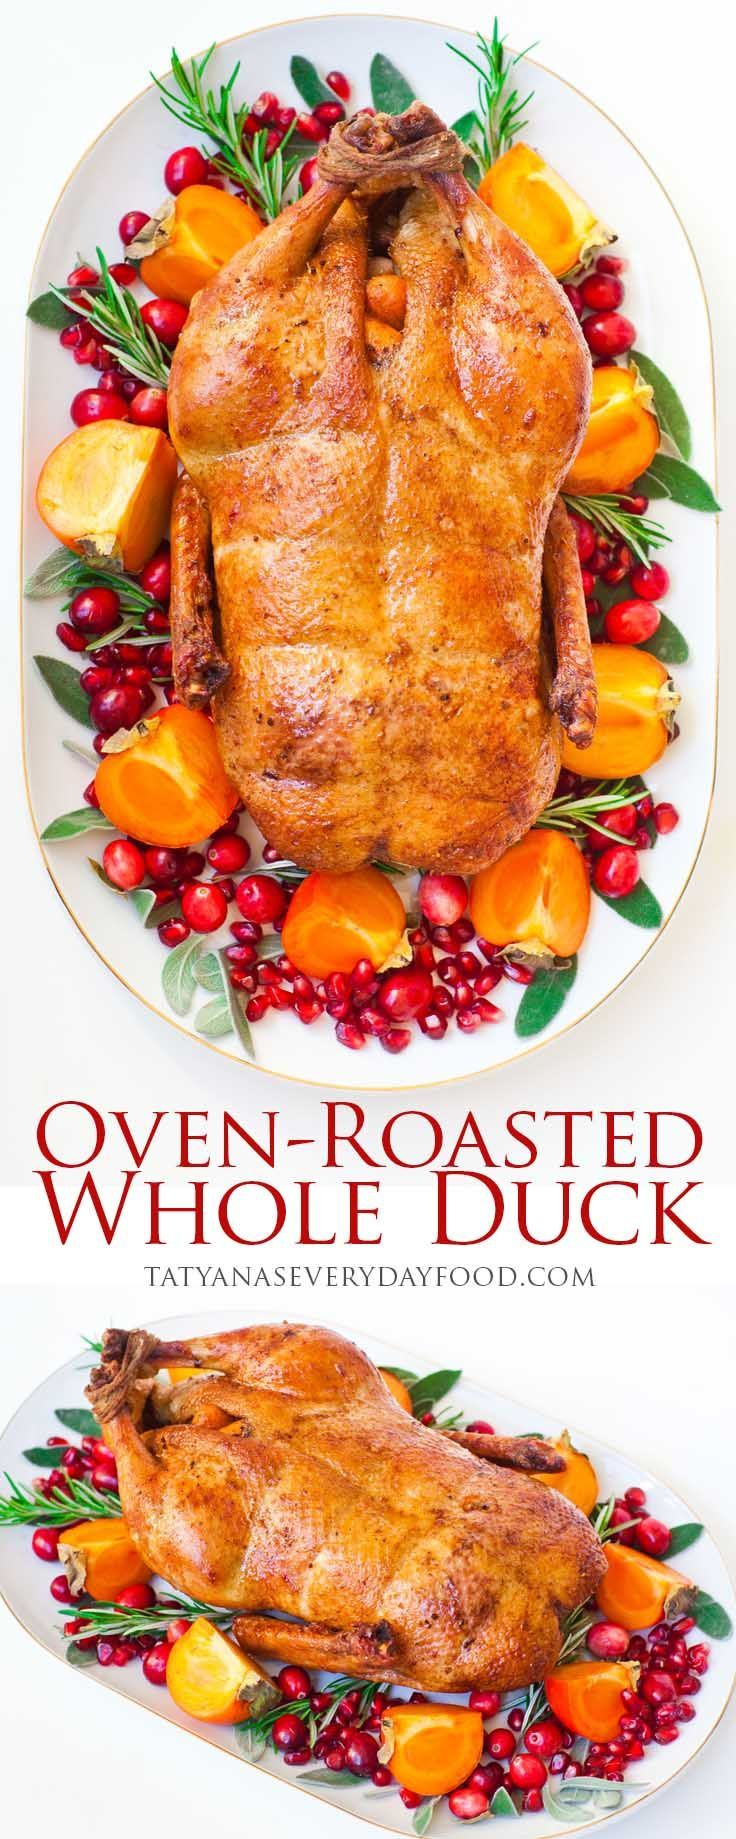 An oven-roasted whole duck is a great alternative to the traditional turkey for your Thanksgiving or Christmas dinner! This simple recipe stuffed with garlic, thyme and shallots yields a flavorful and juicy bird! Overcome the intimidation of preparing a whole bird by watching my video tutorial on this recipe! Enjoyed this recipe? Please share and […]